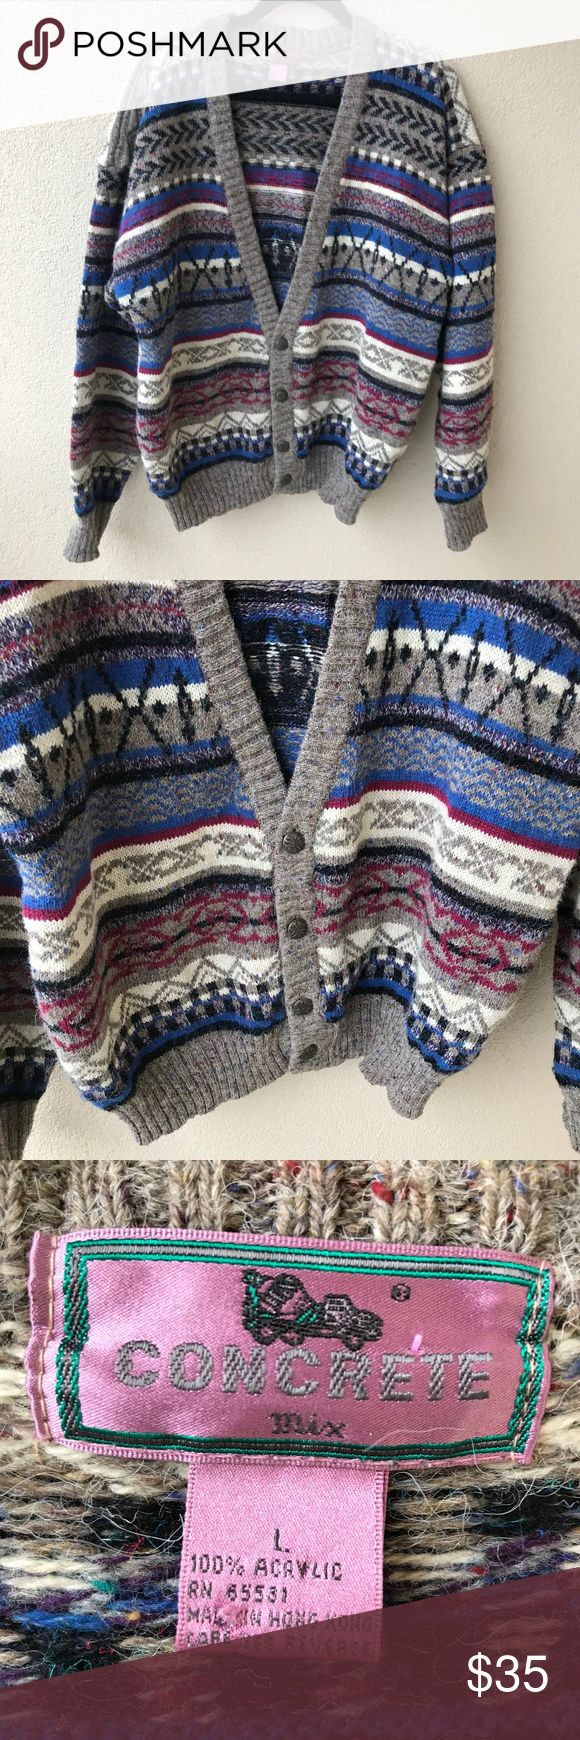 """Vintage Concrete Aztec Print Cardigan Sweater Vintage chunky cardigan grandpa Cosby sweater from Concrete.  This sweater has an Aztec, tribal type red, blue, and black print throughout with light brown speckled trim.  Excellent vintage condition.  - Size Large L - Approx. 25"""" across chest - Approx. 27"""" long - 100% acrylic Vintage Sweaters Cardigan"""